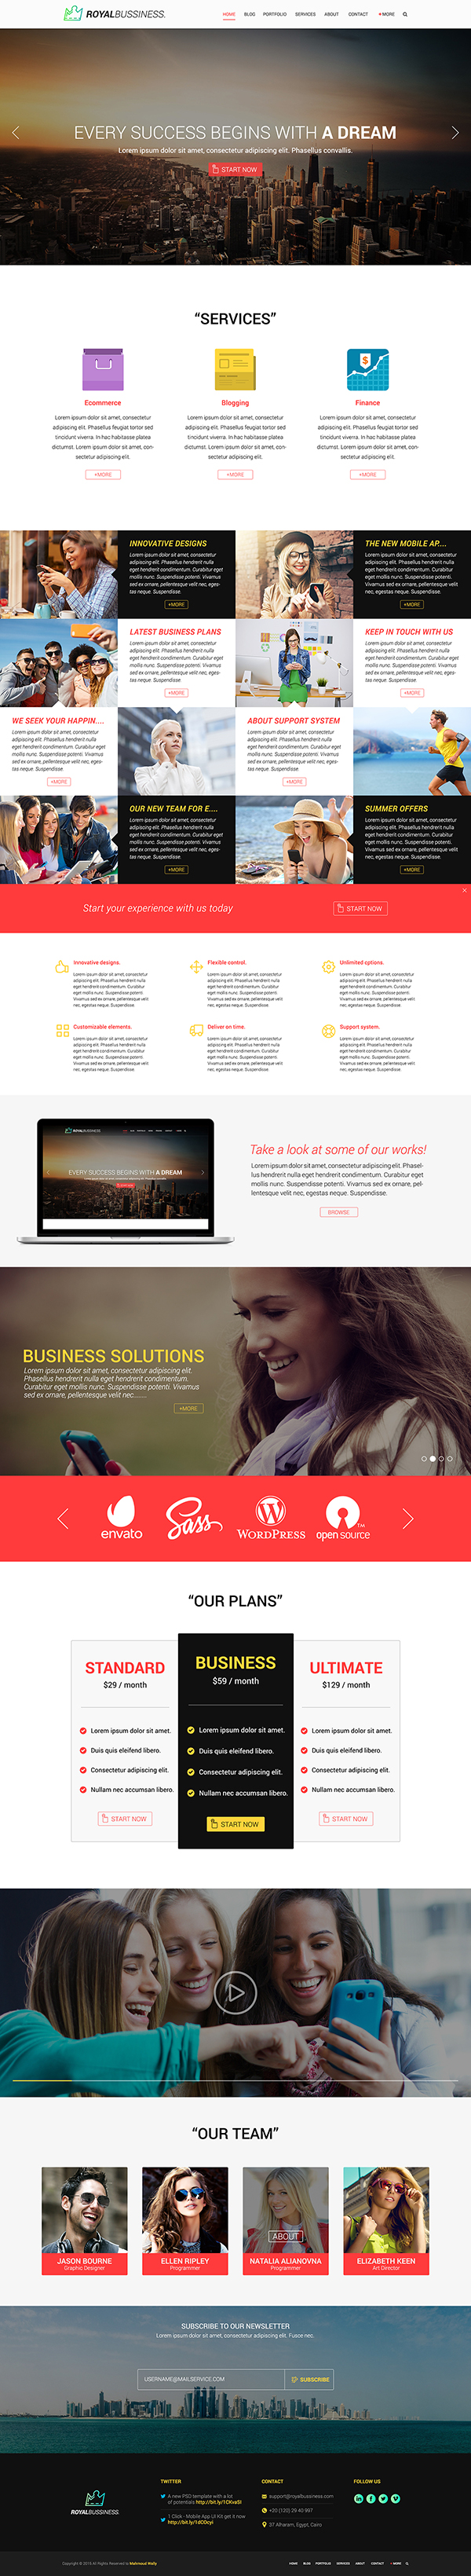 07 Royal Business - FREE Multipurpose PSD Template